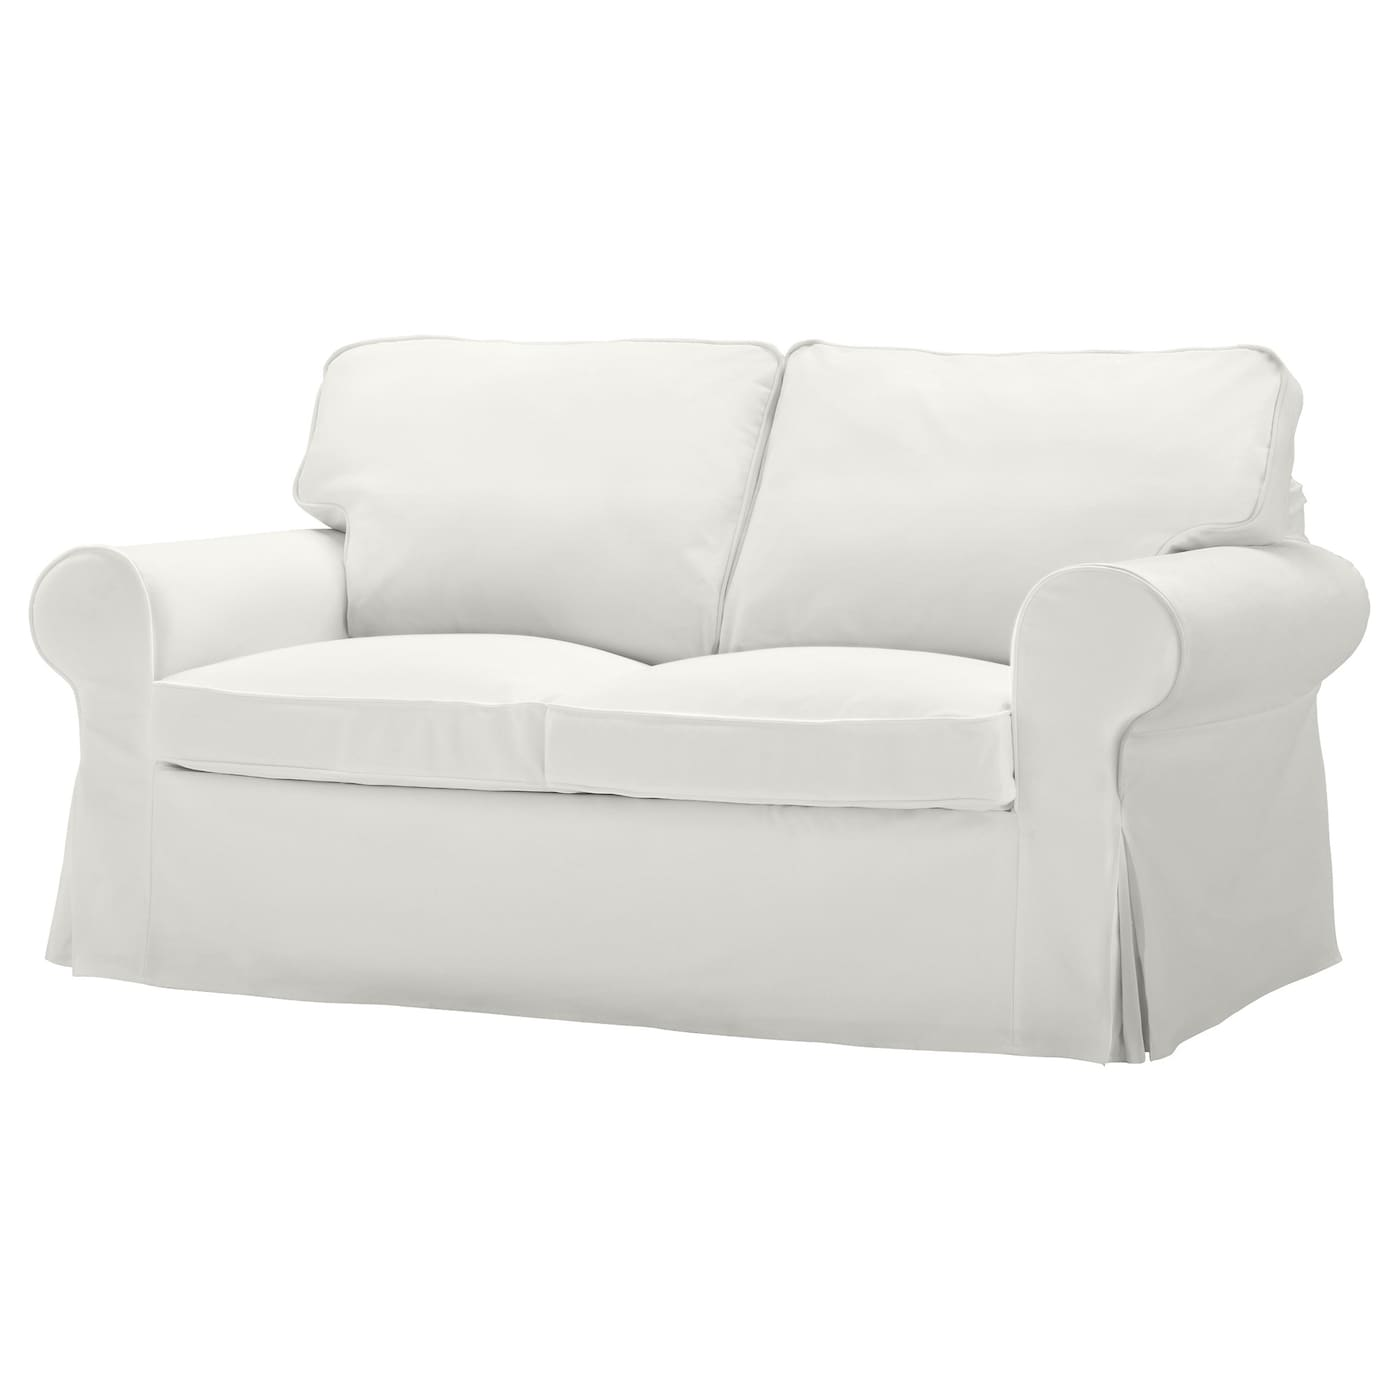 ektorp cover two seat sofa blekinge white ikea. Black Bedroom Furniture Sets. Home Design Ideas